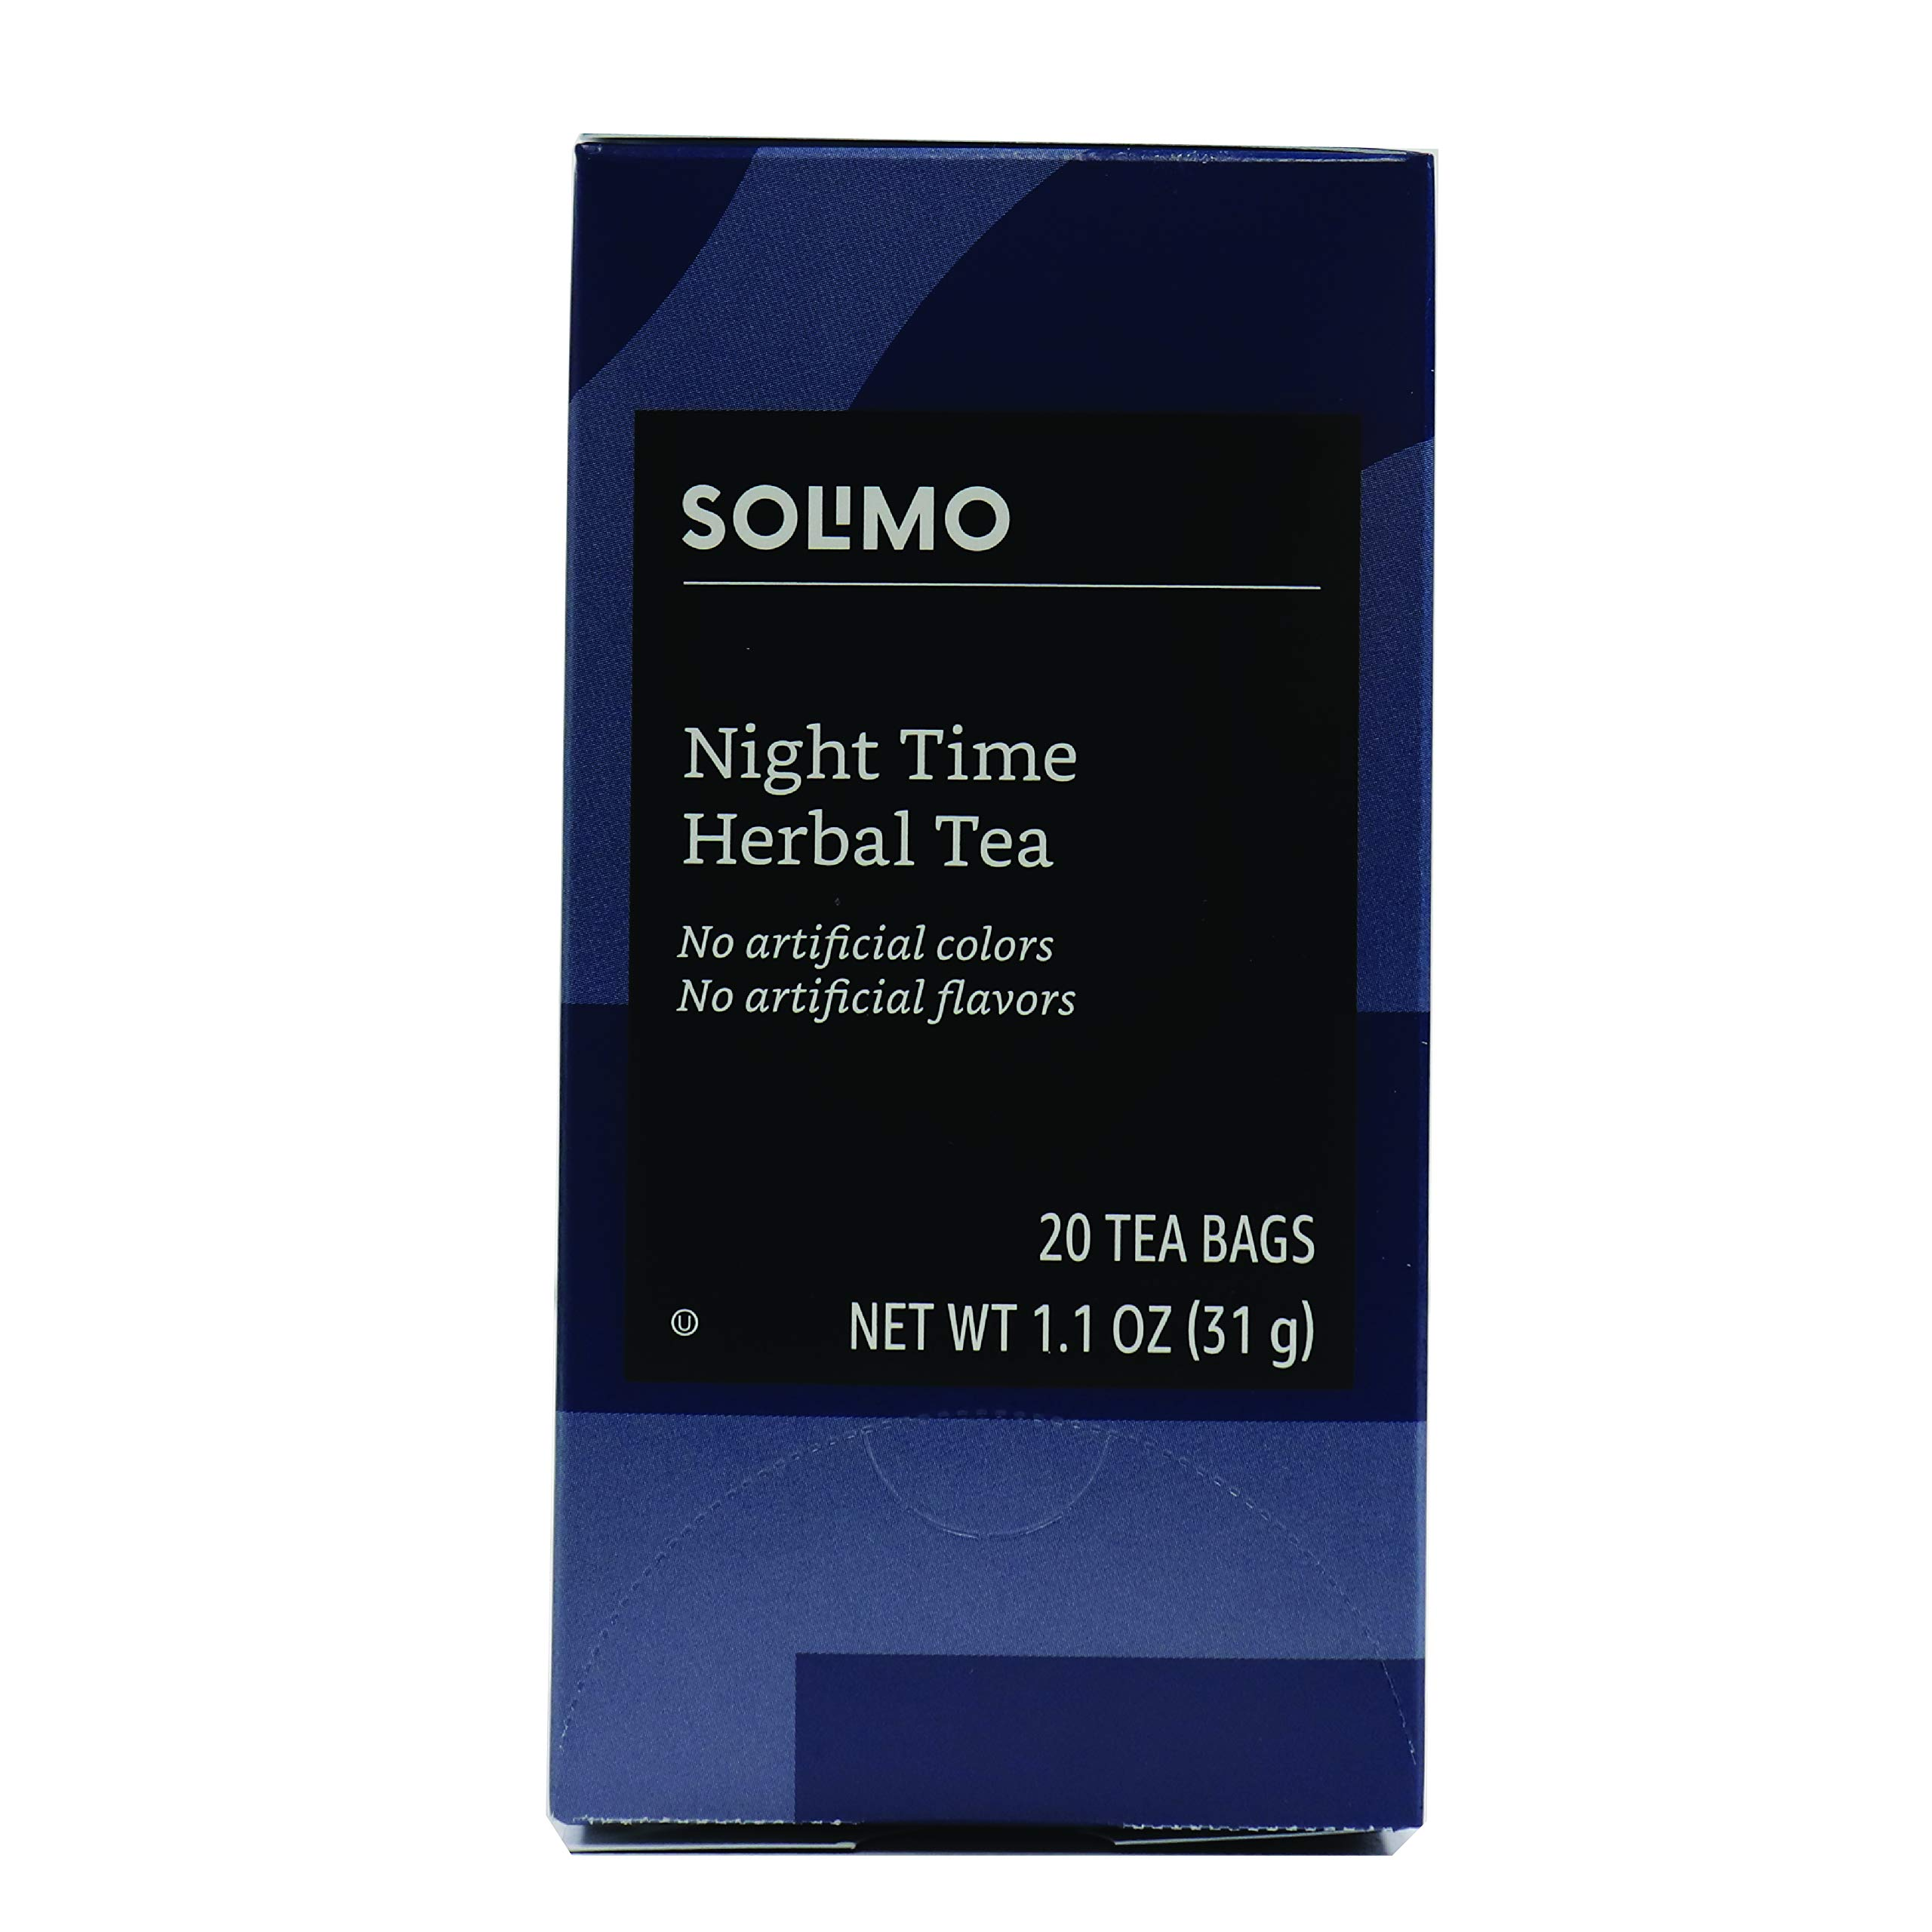 Amazon Brand - Solimo Night Time Herbal Tea Bags, 20 Count